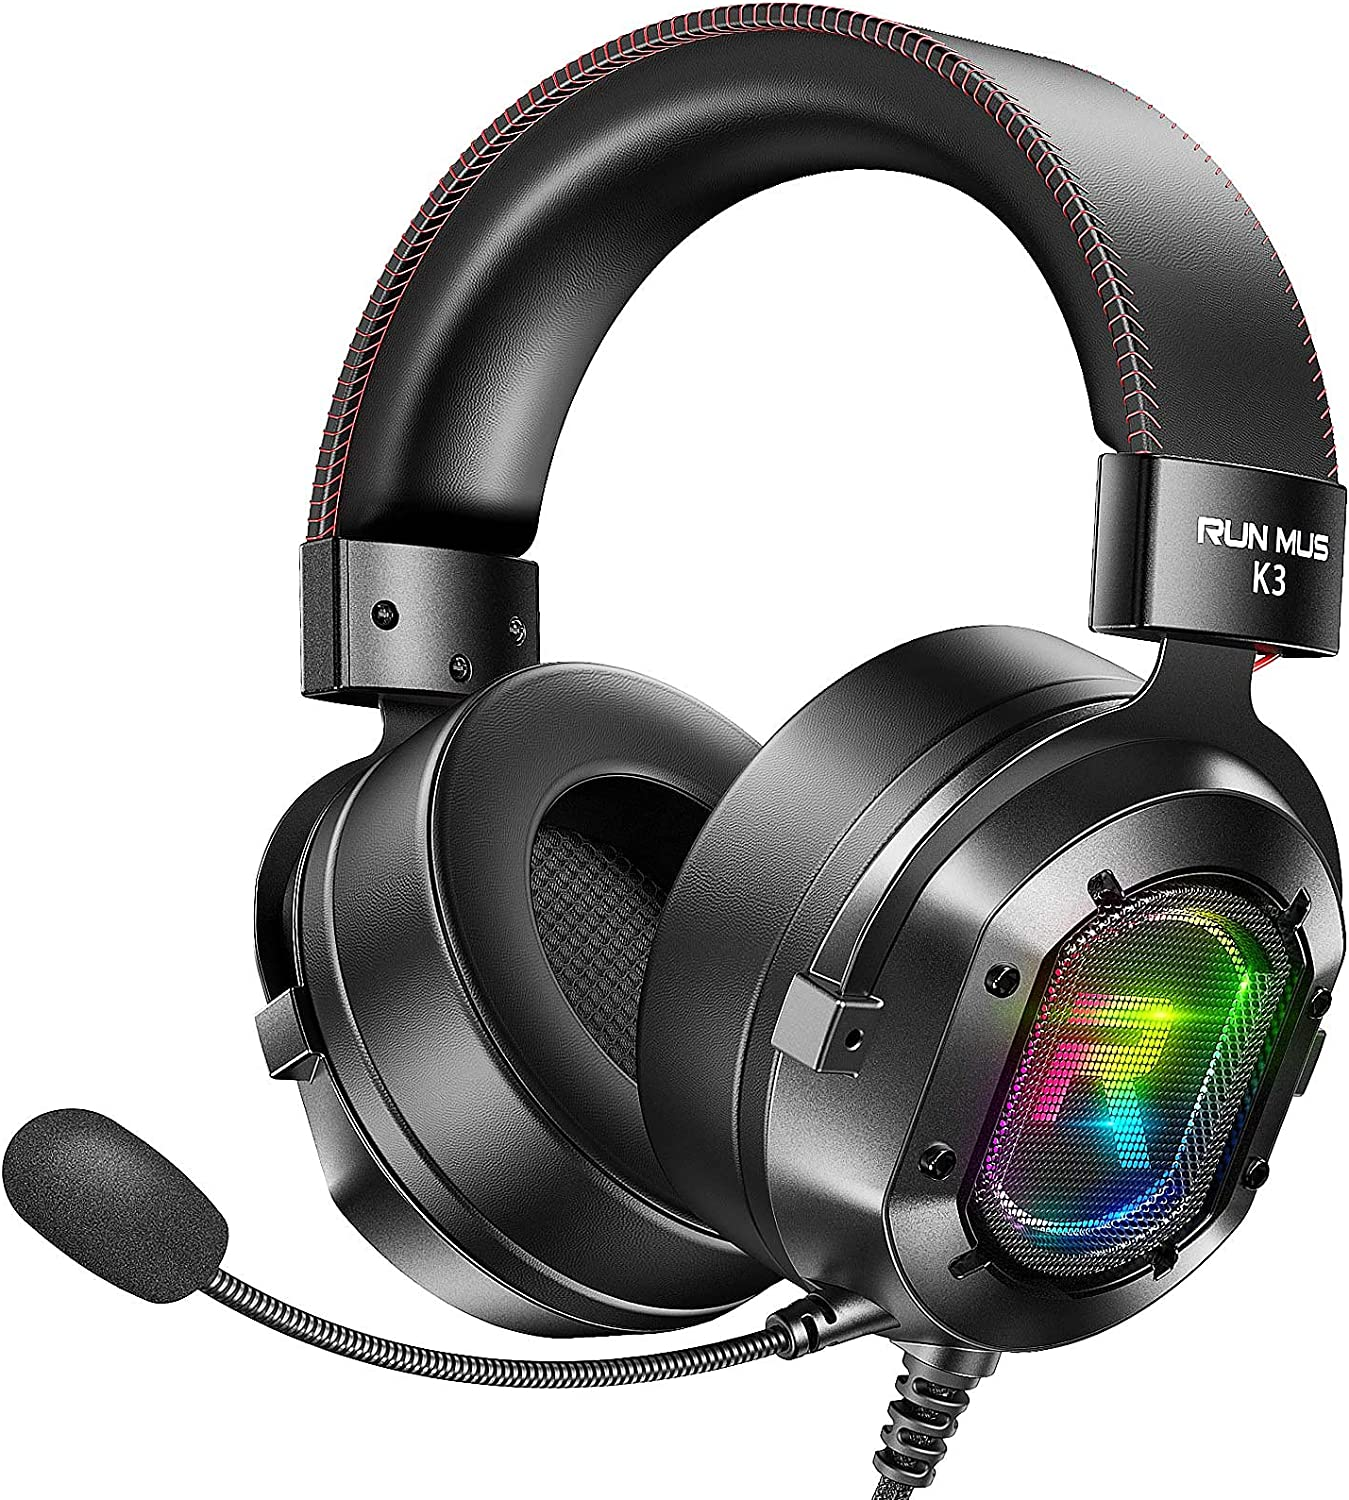 RUNMUS Gaming Headset for Xbox One, PS4, PC Headset w/ Surround Sound, Over Ear Headphones with Noise Canceling Mic & RGB Light, Compatible with Xbox One, PS4, Nintendo Switch, PC, Mac, Sega Dreamcast